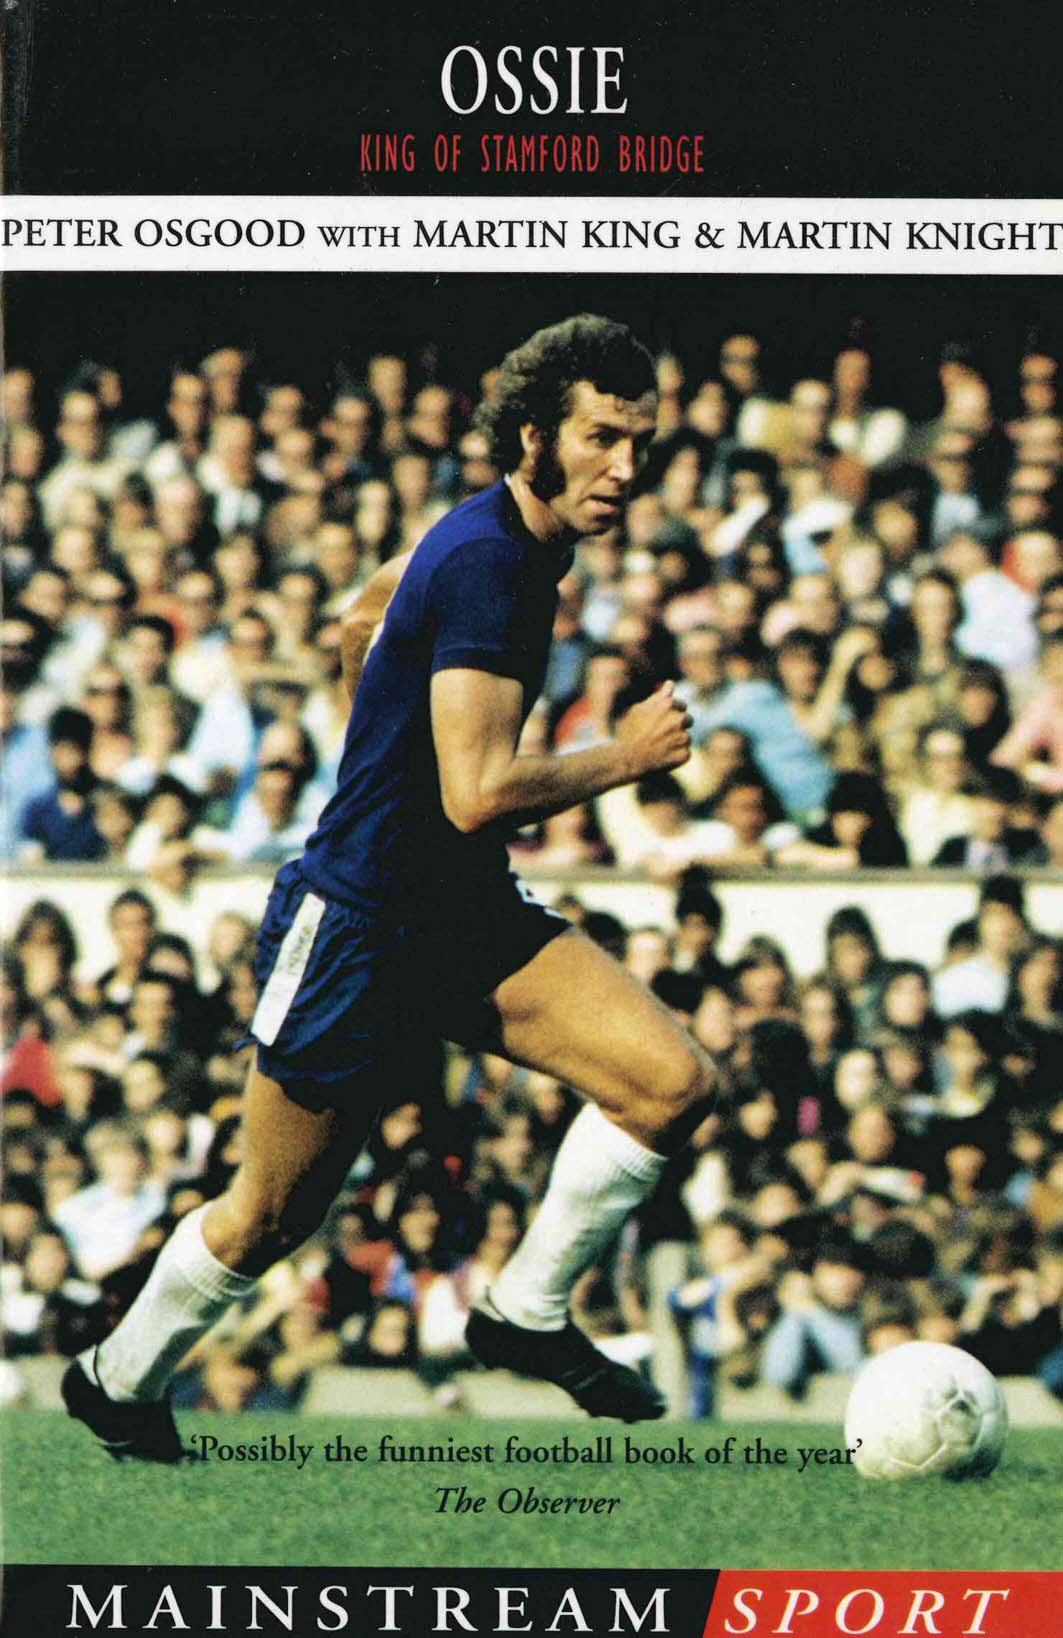 Ossie King of Stamford Bridge